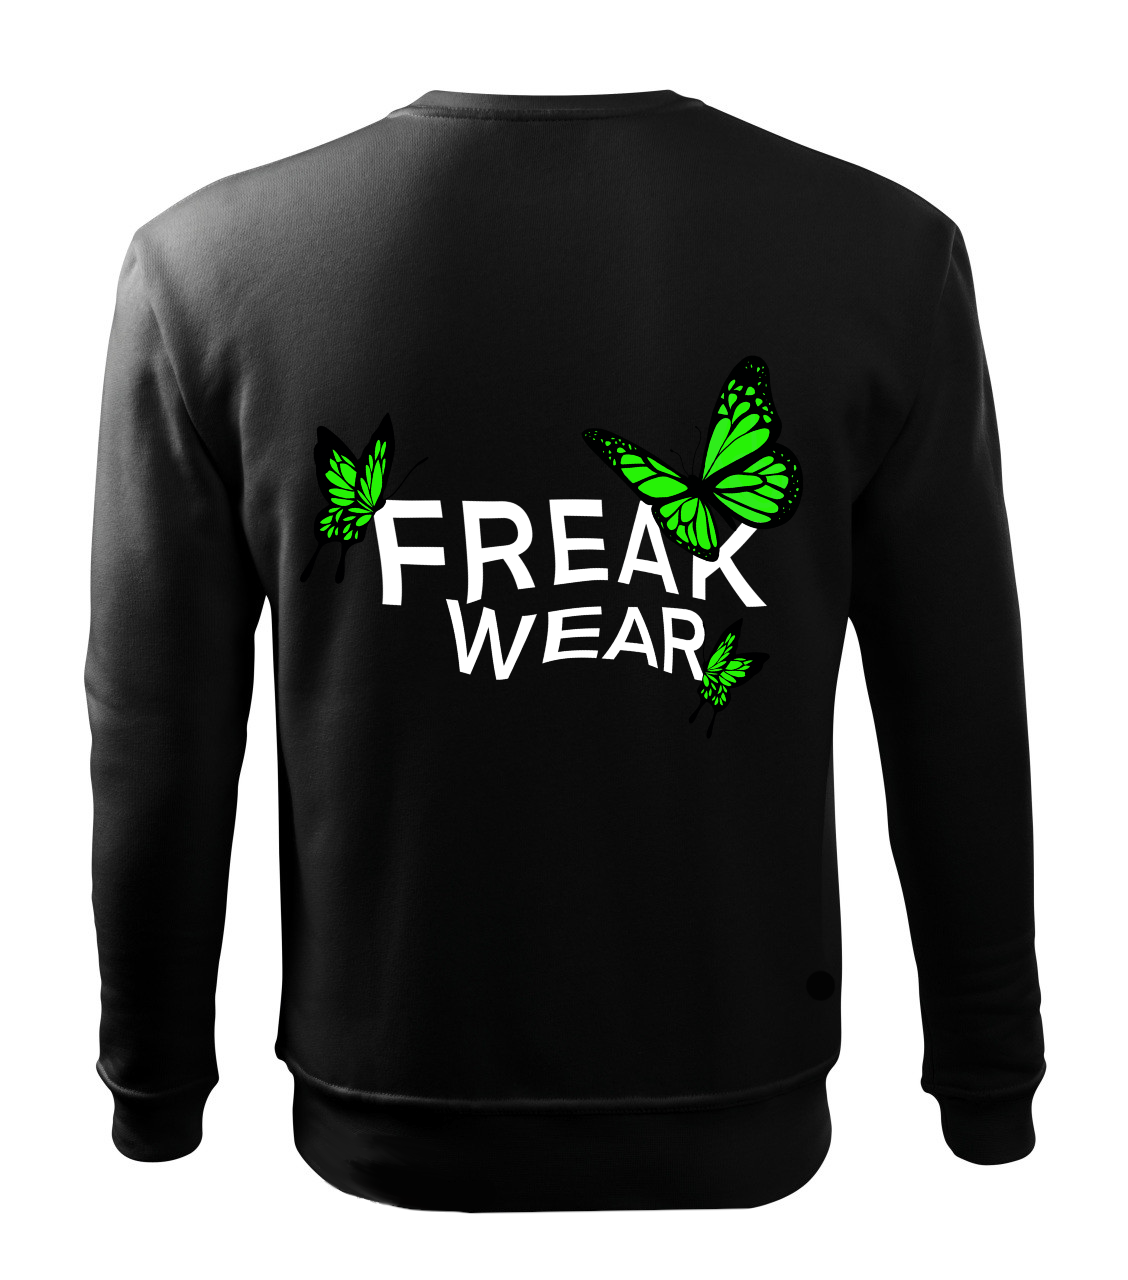 Mikina Freak Wear bez kapuce BL green